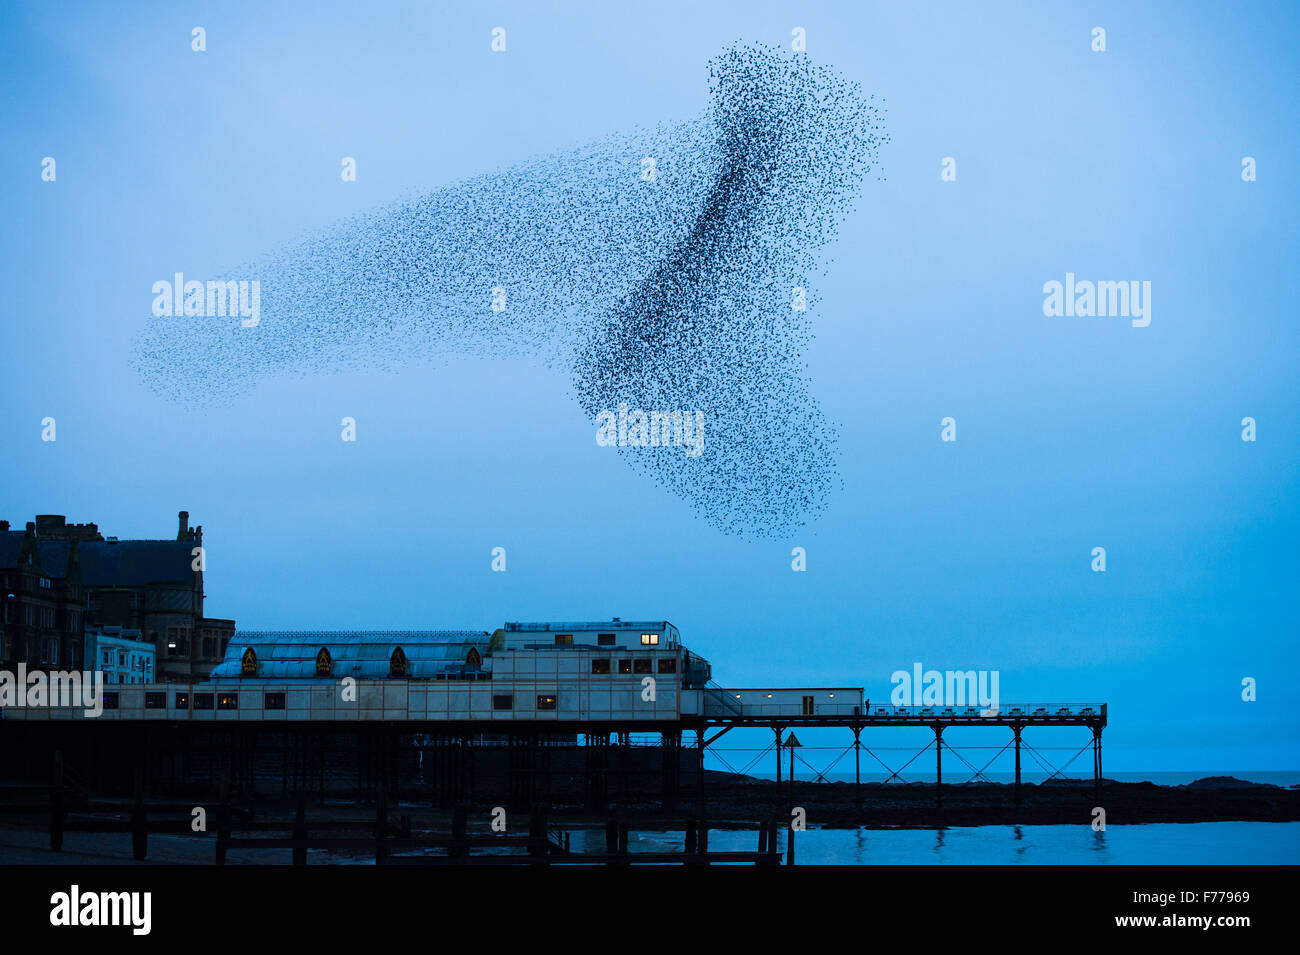 Aberystwyth, Wales, UK. 26th November, 2015.  A huge flock of starlings perform spectacular displays in the air Stock Photo